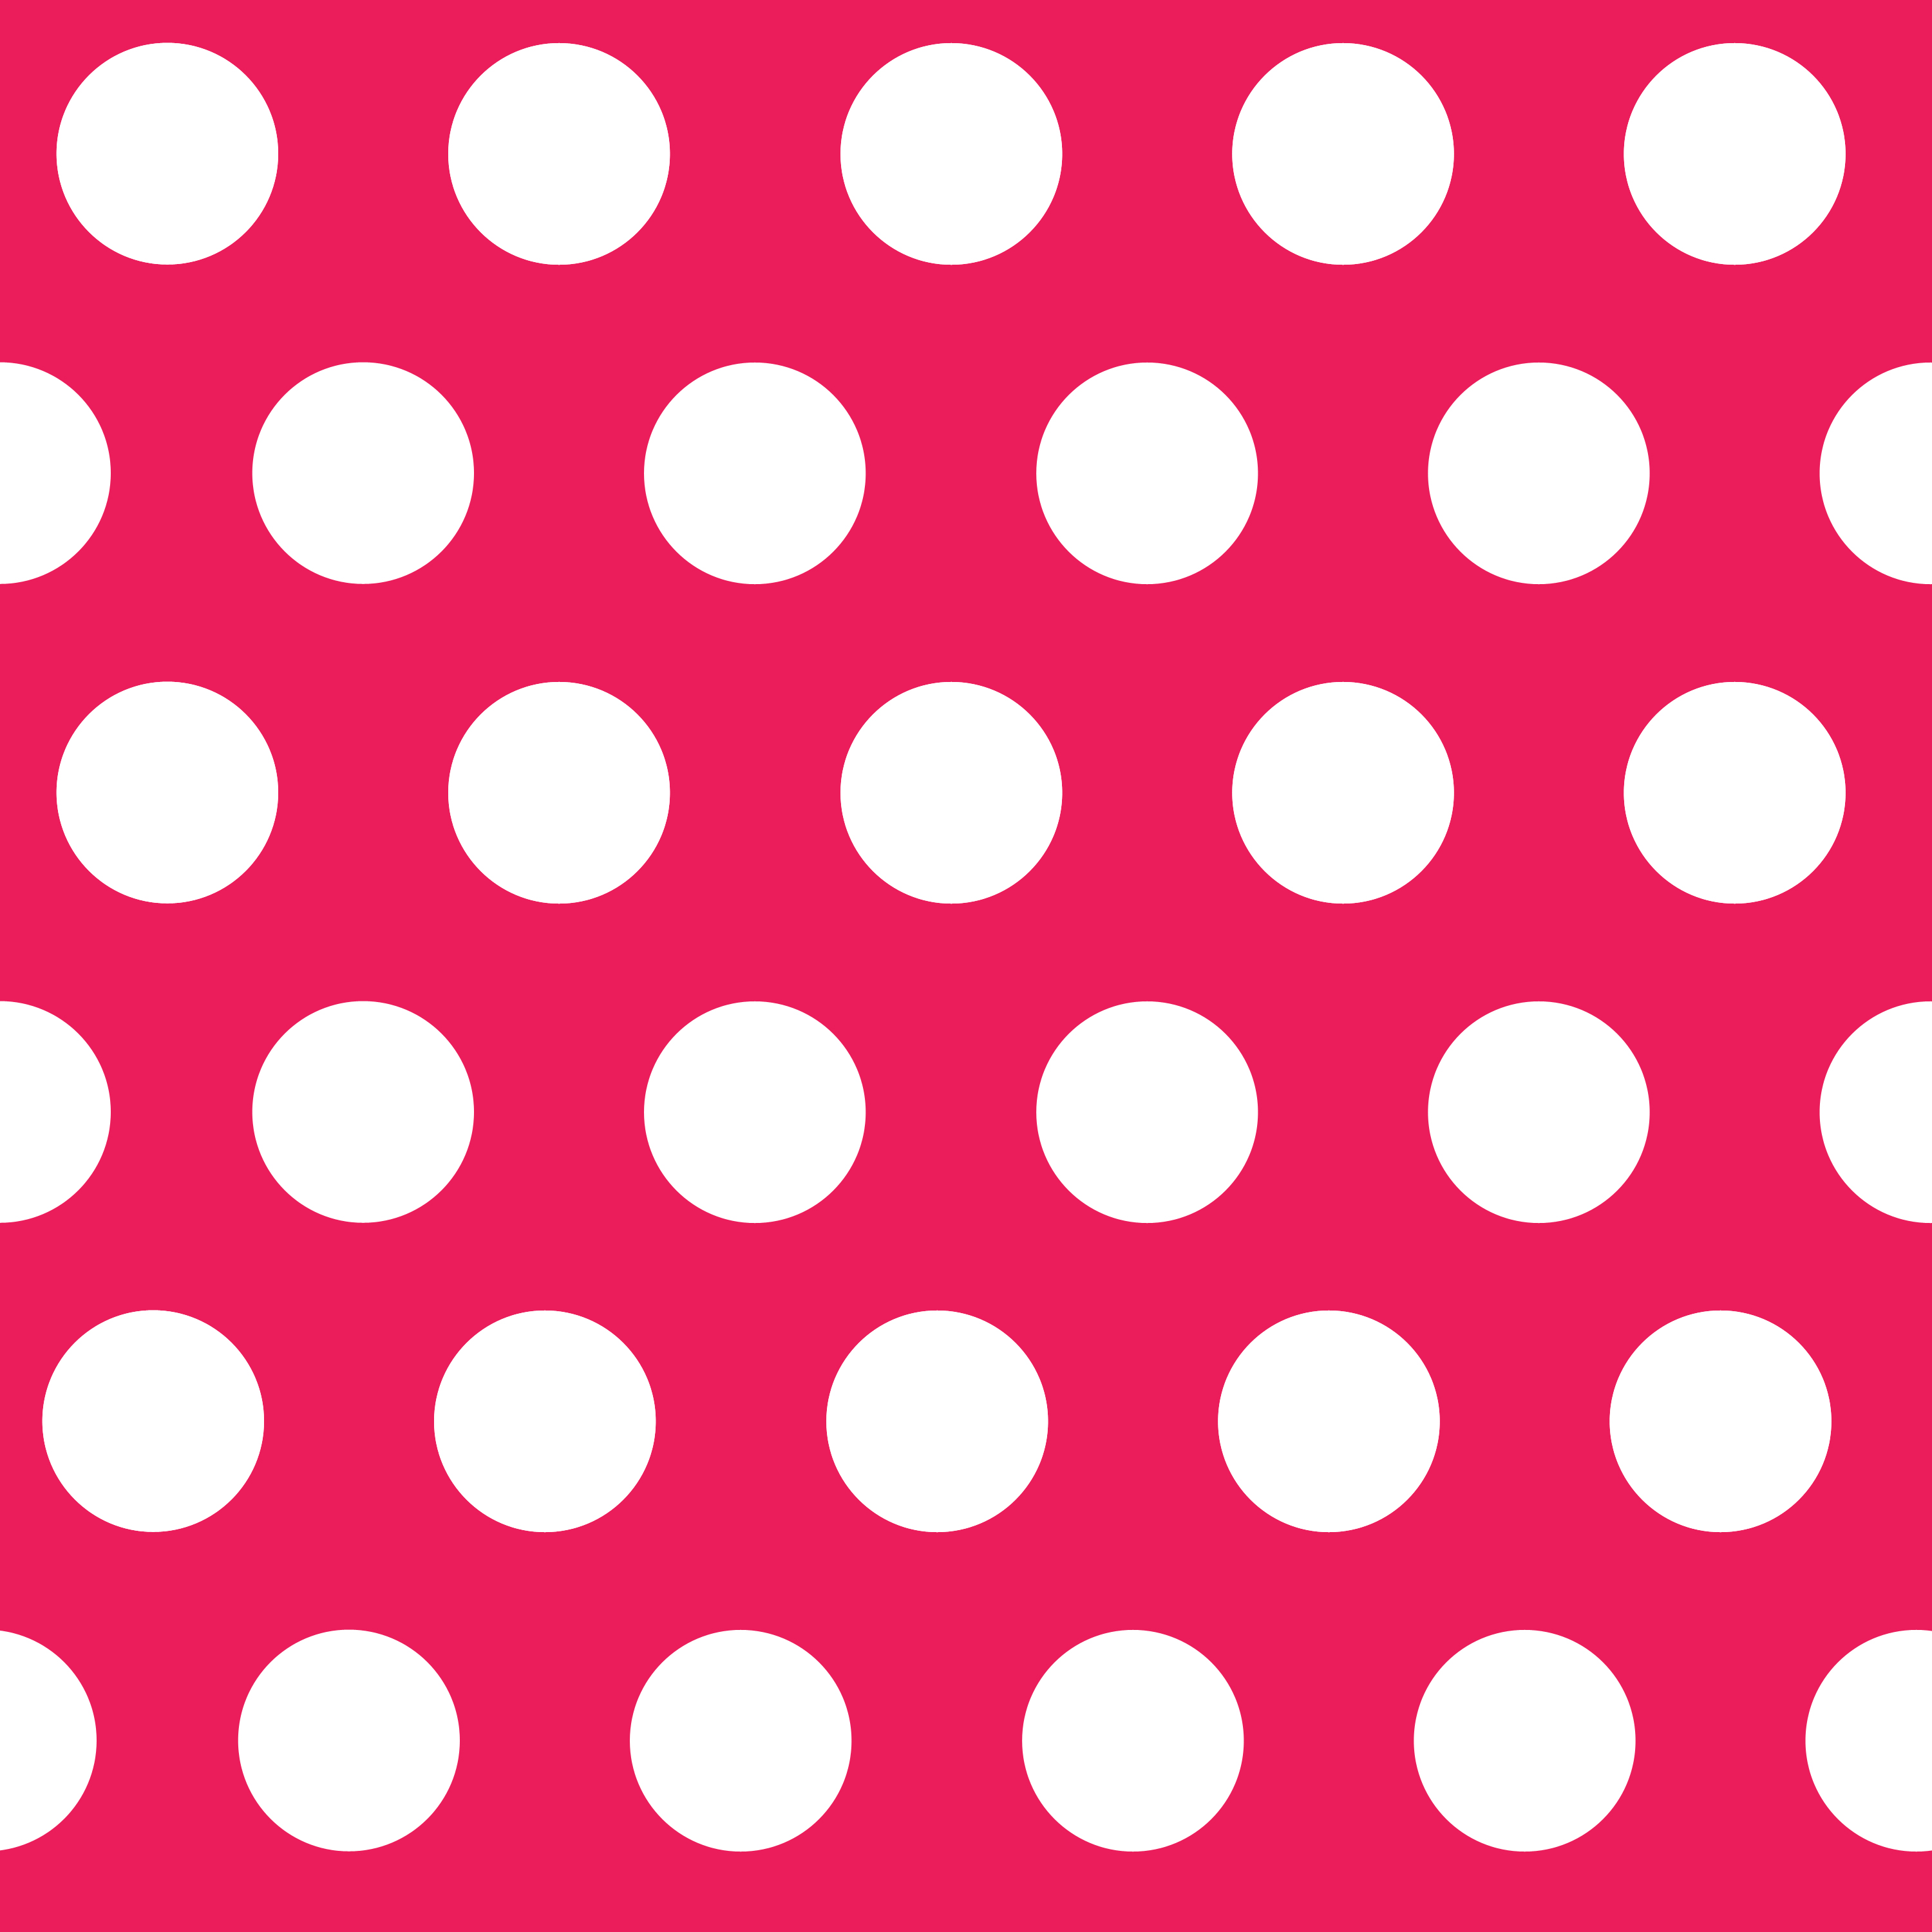 Pink Polka Dot Wallpaper  Wallpapersafari. Waterford Institute Of Tech Template. Rental Agreement Application Form Template. Case Report Poster Template. Request For Meeting Email Sample Template. Movie Database Template For Microsoft Access Template. Maintenance Technician Sample Resume Template. Photography Gift Certificates Templates Free Template. Basic Resume Objective Statements